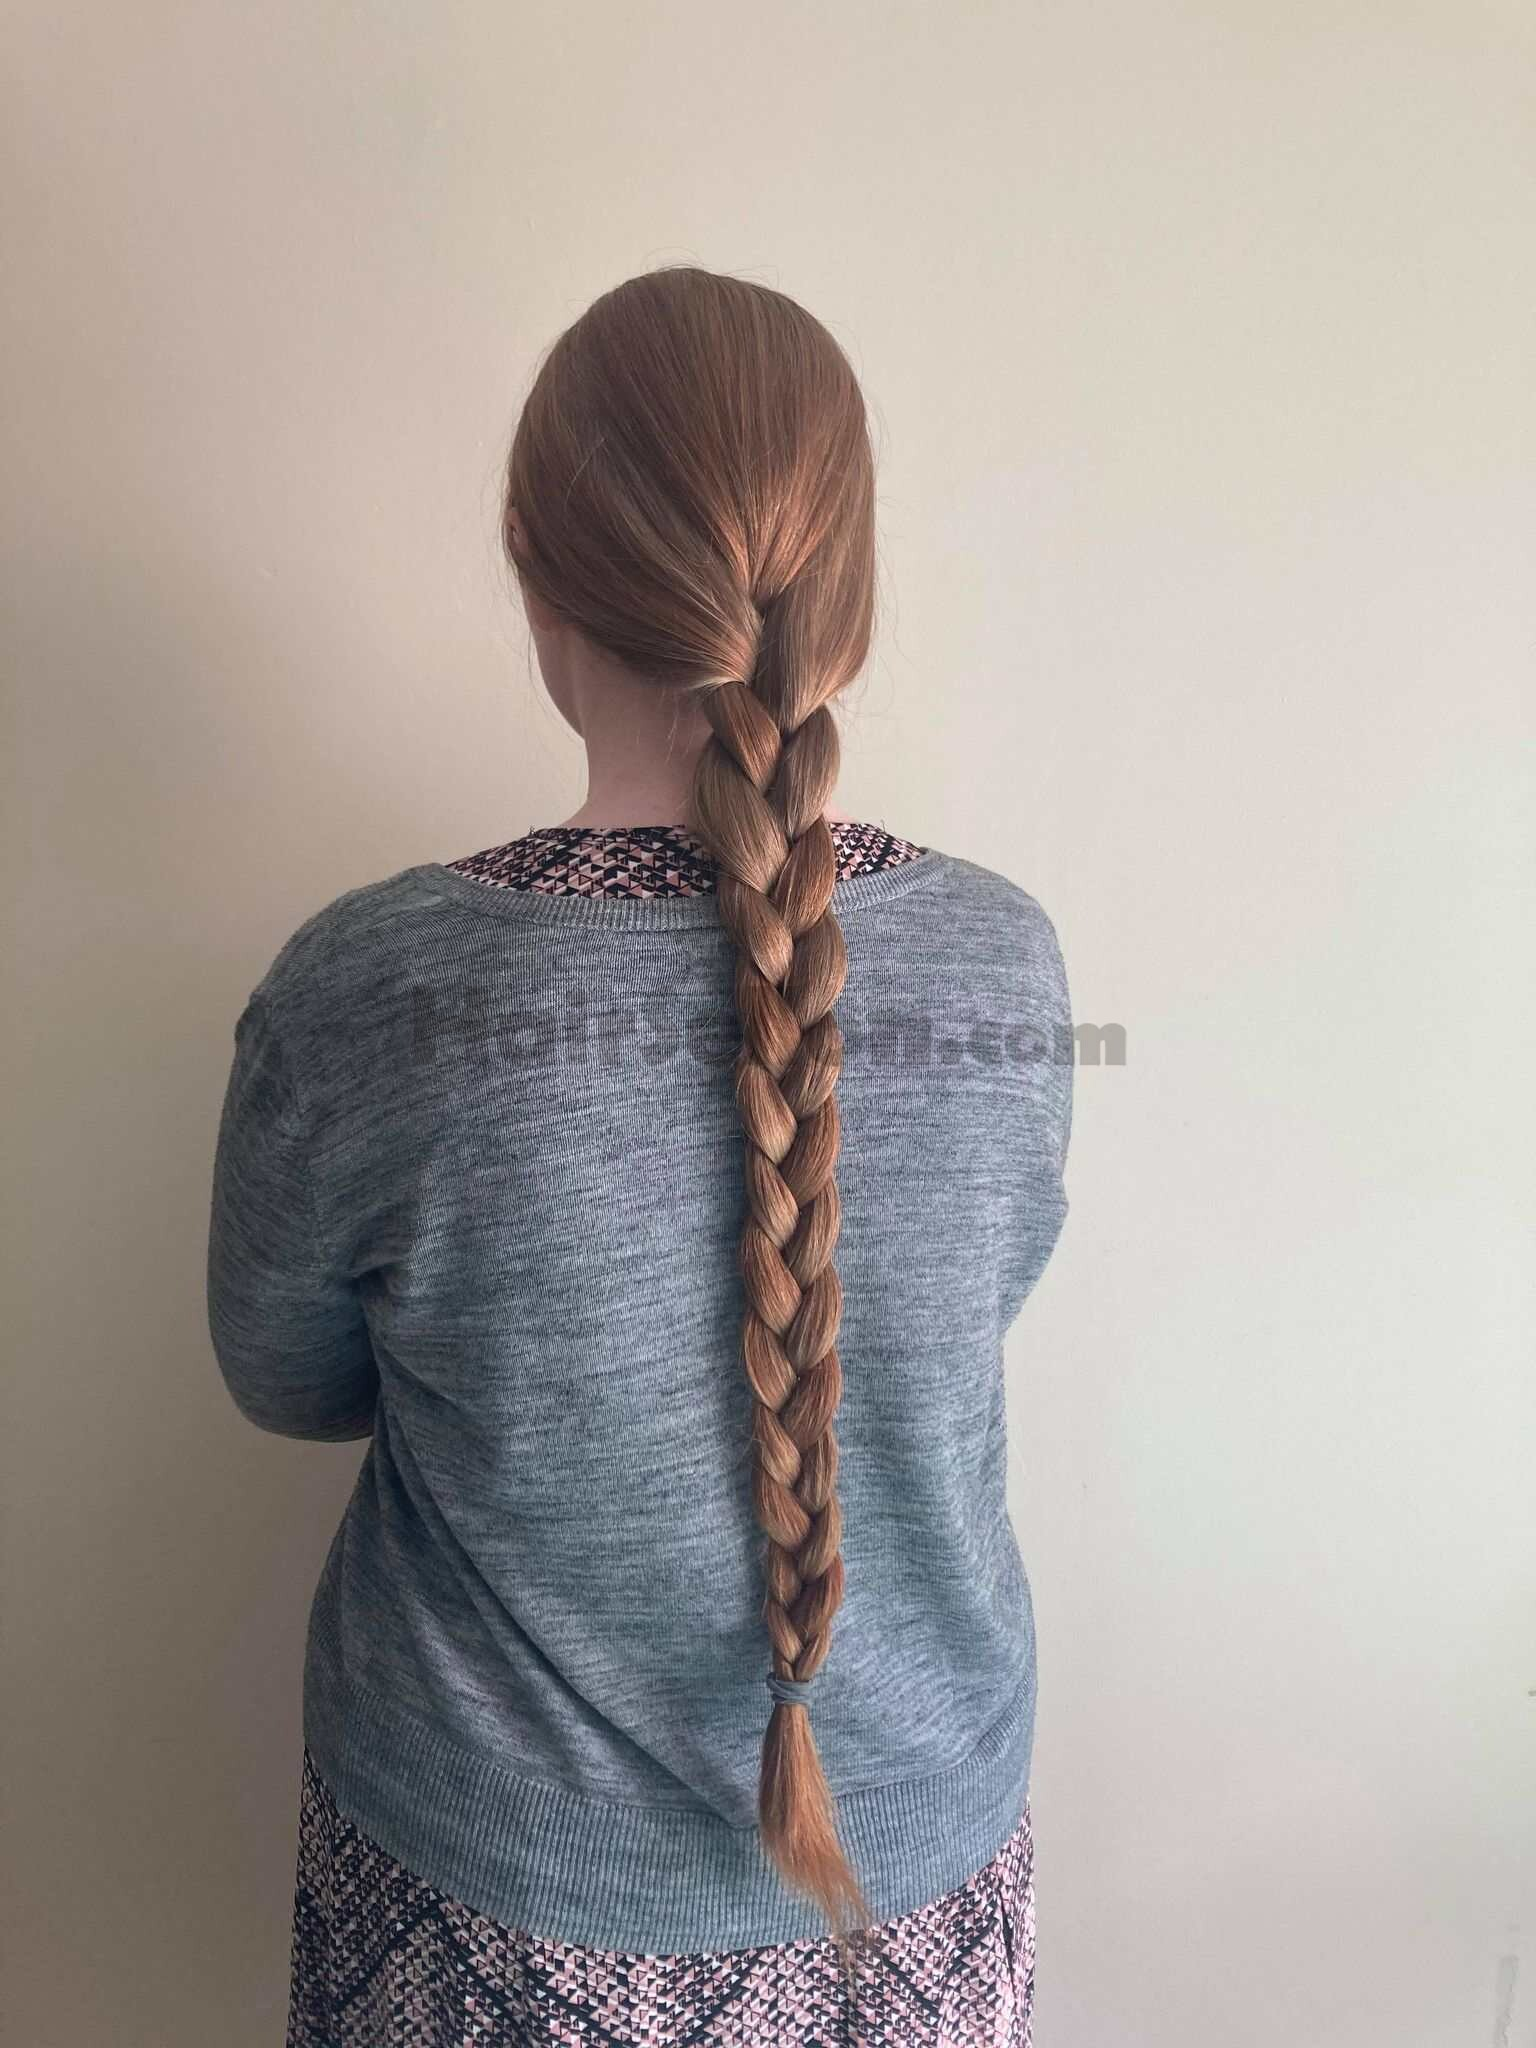 single braid; only natural light